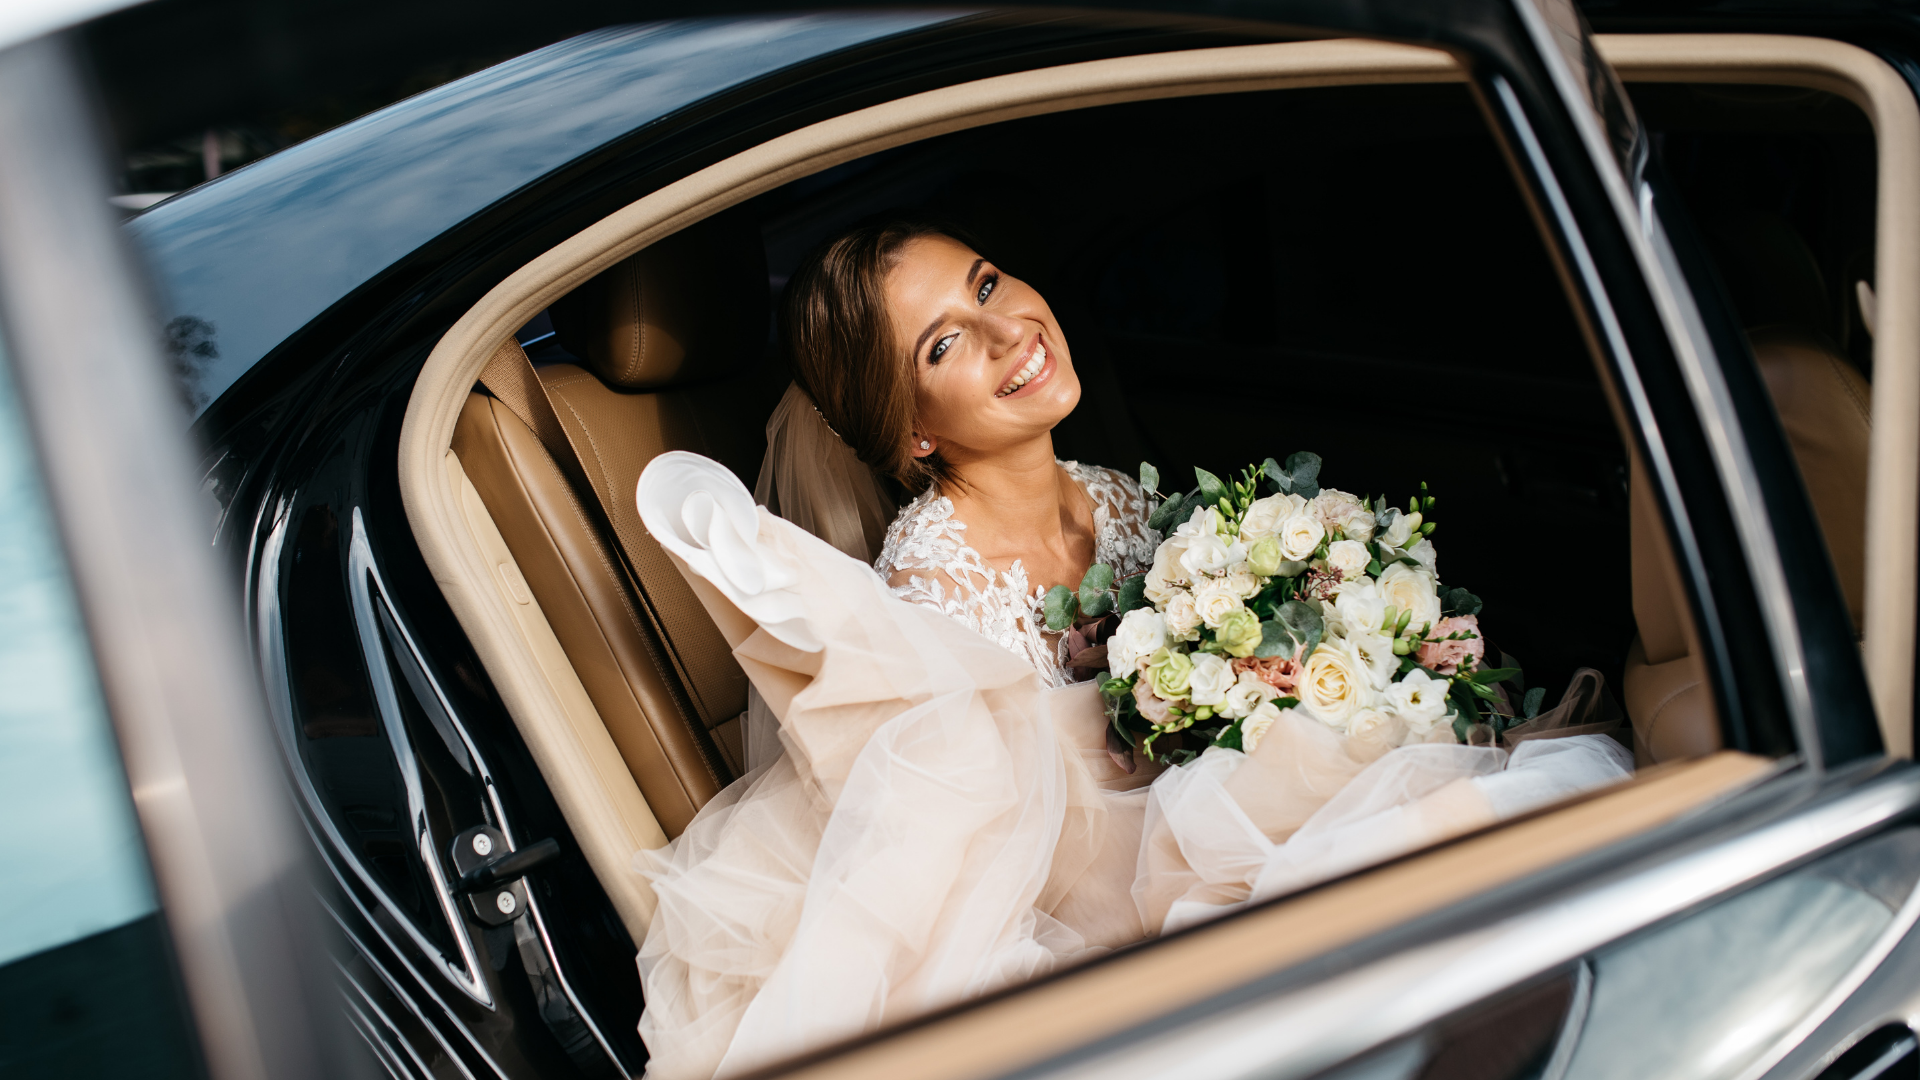 Wedding limos ensure that you and your loved ones arrive to your wedding safely and on time. When booking your wedding limos in Palermo, be sure to read reviews from past clients to find a company that's professional and reputable. Along with your wedding limos, consider booking shuttles to help transport your guests, as well.